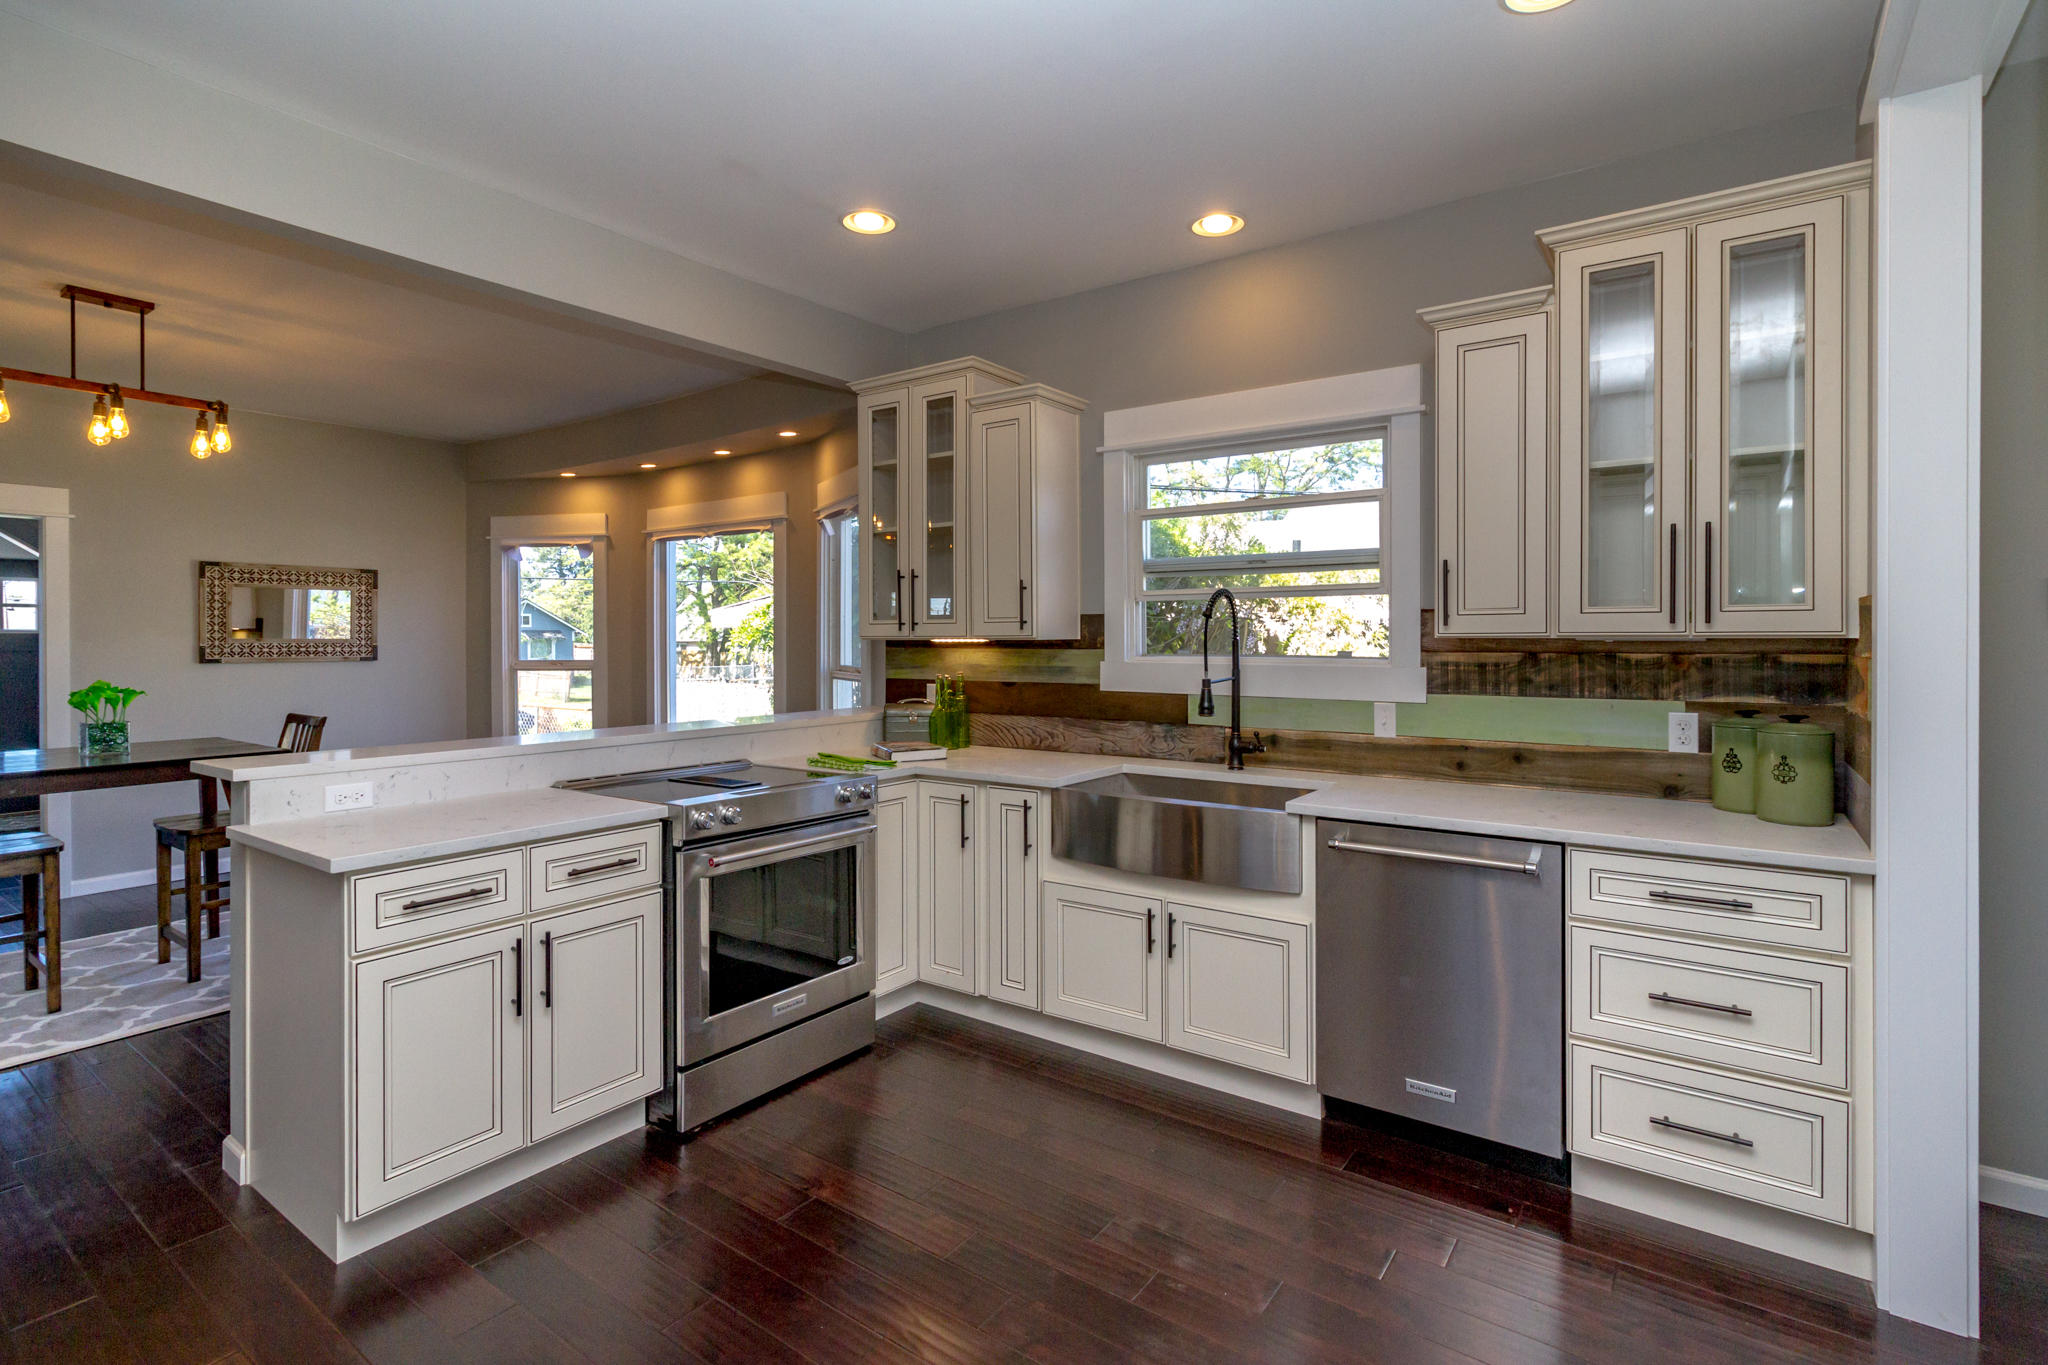 Fullsize Of Lily Ann Cabinets